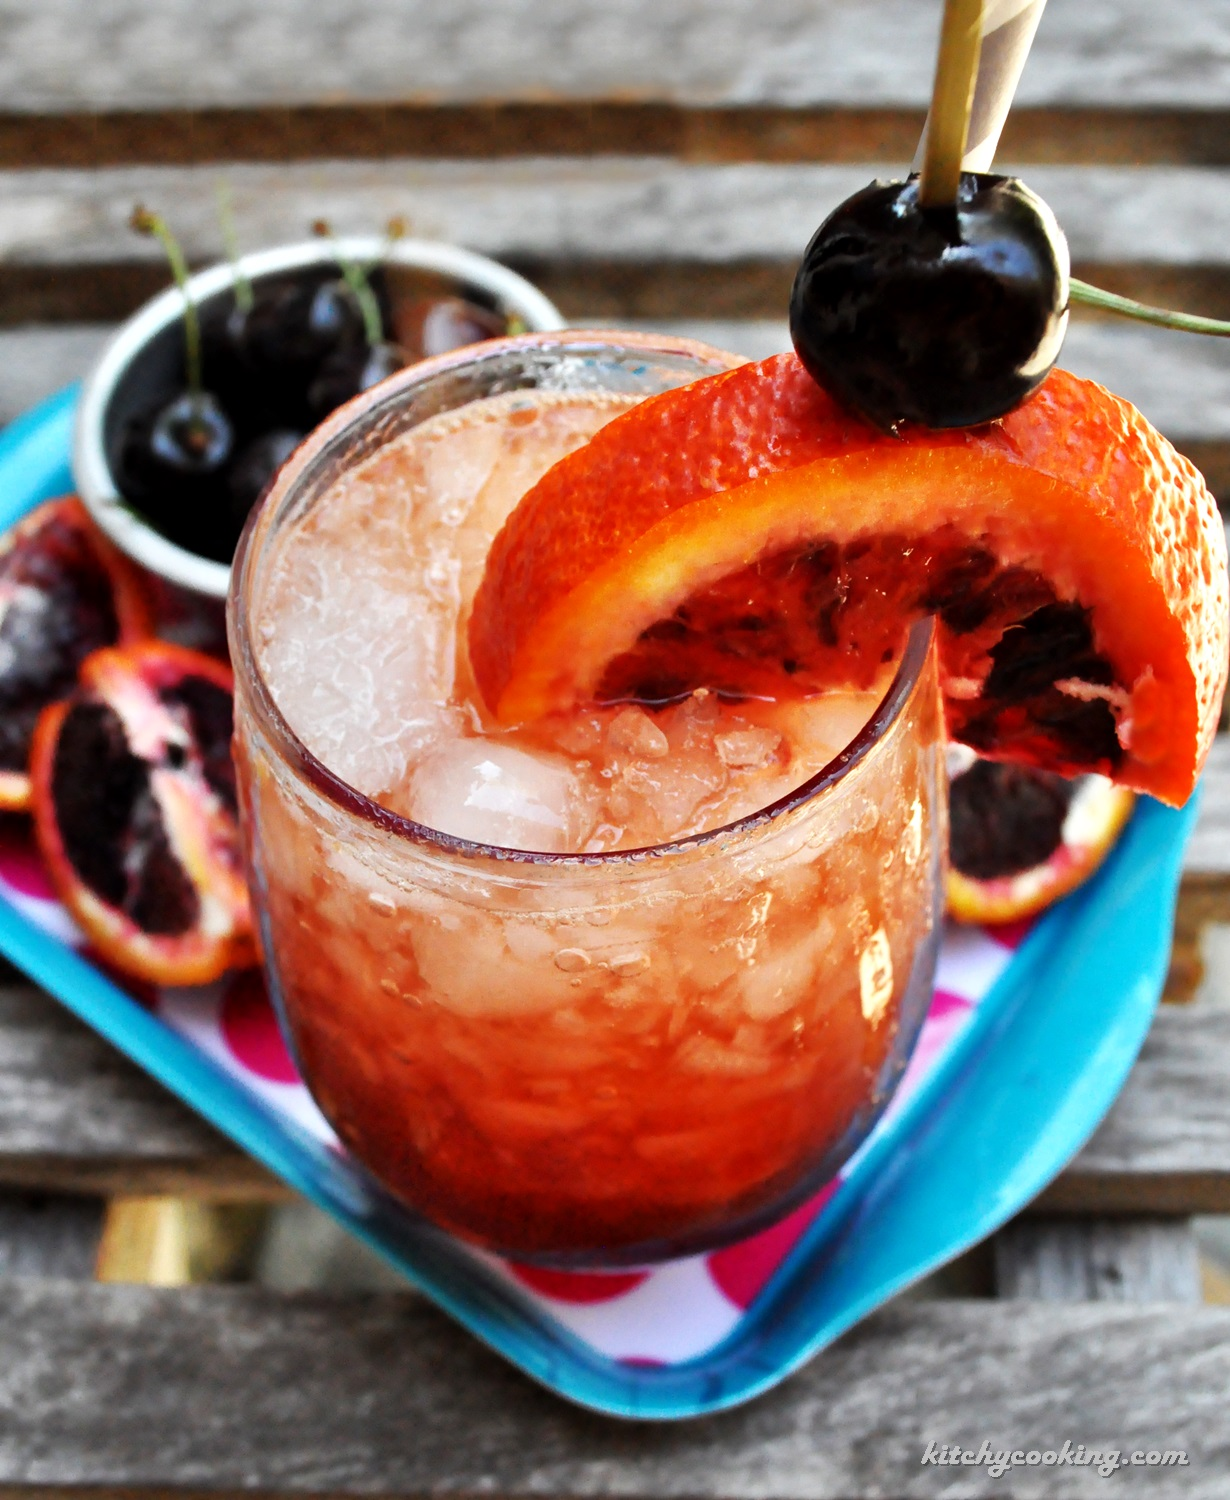 eb3b9f6e8a0 This drink is cold and sweet and full of fruit